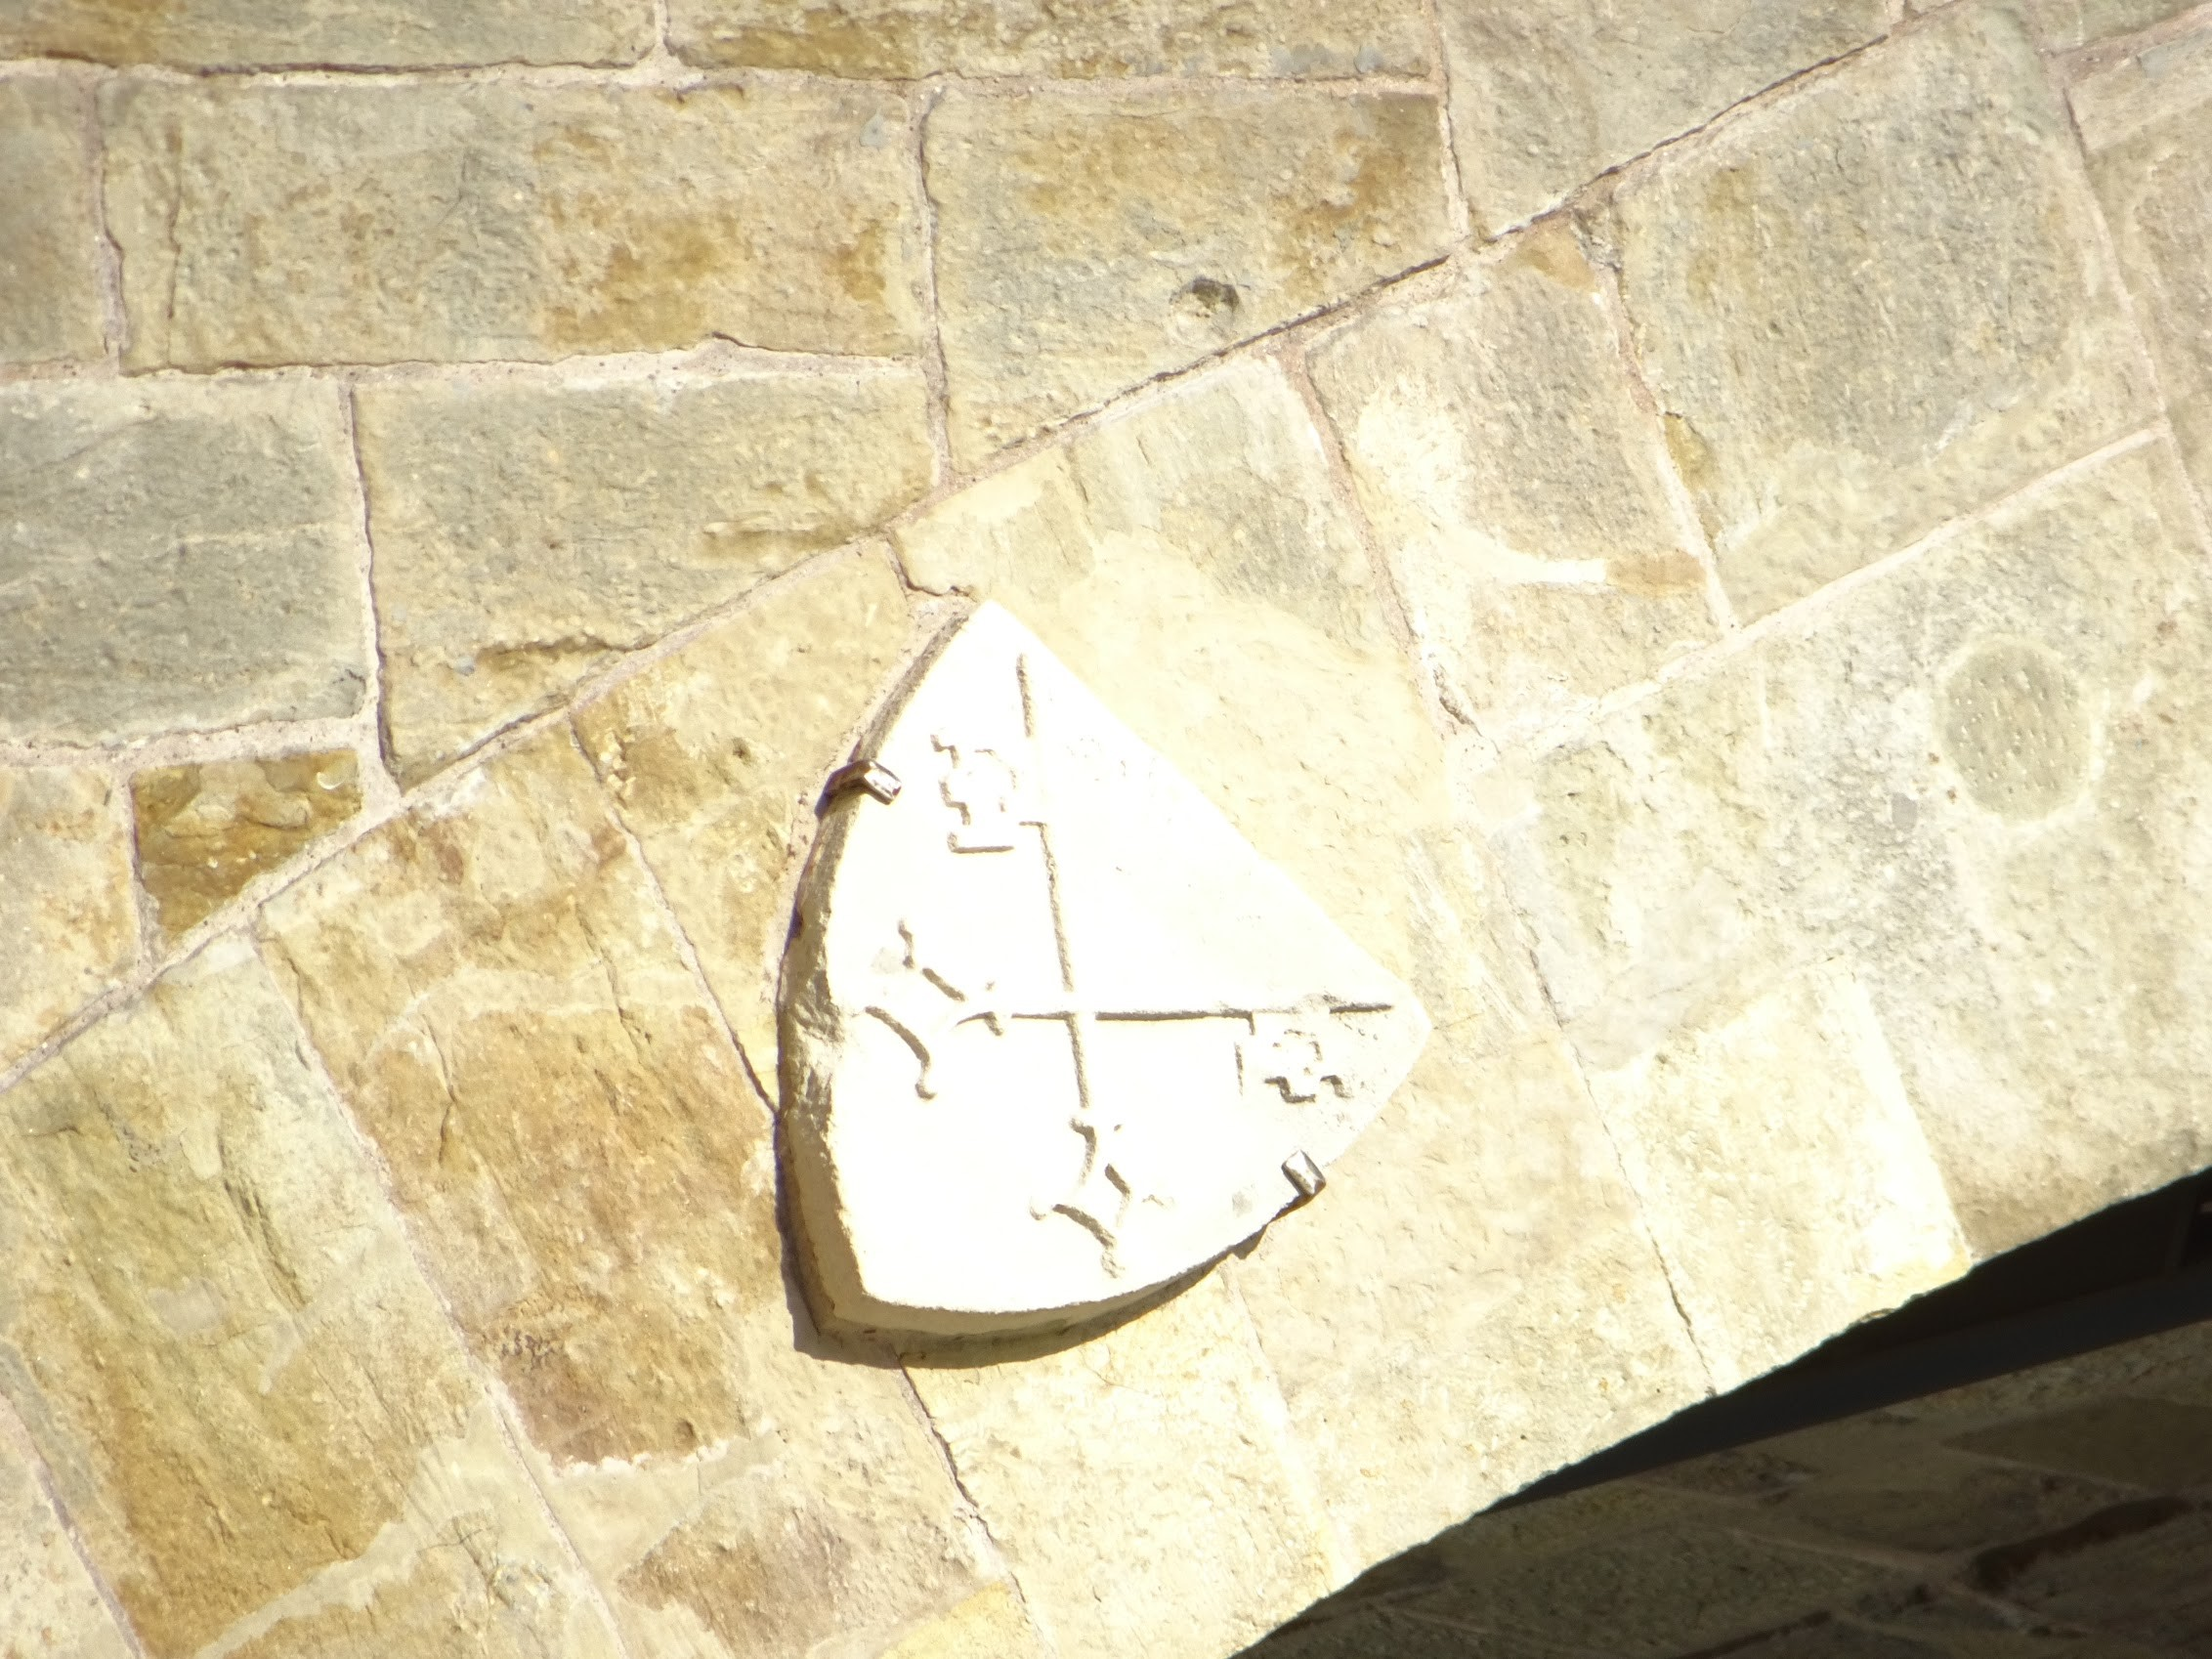 Do these to plaques mark the parishes on each side? The Cathedral is St Peter's certainly. There is a core hole too, I see.